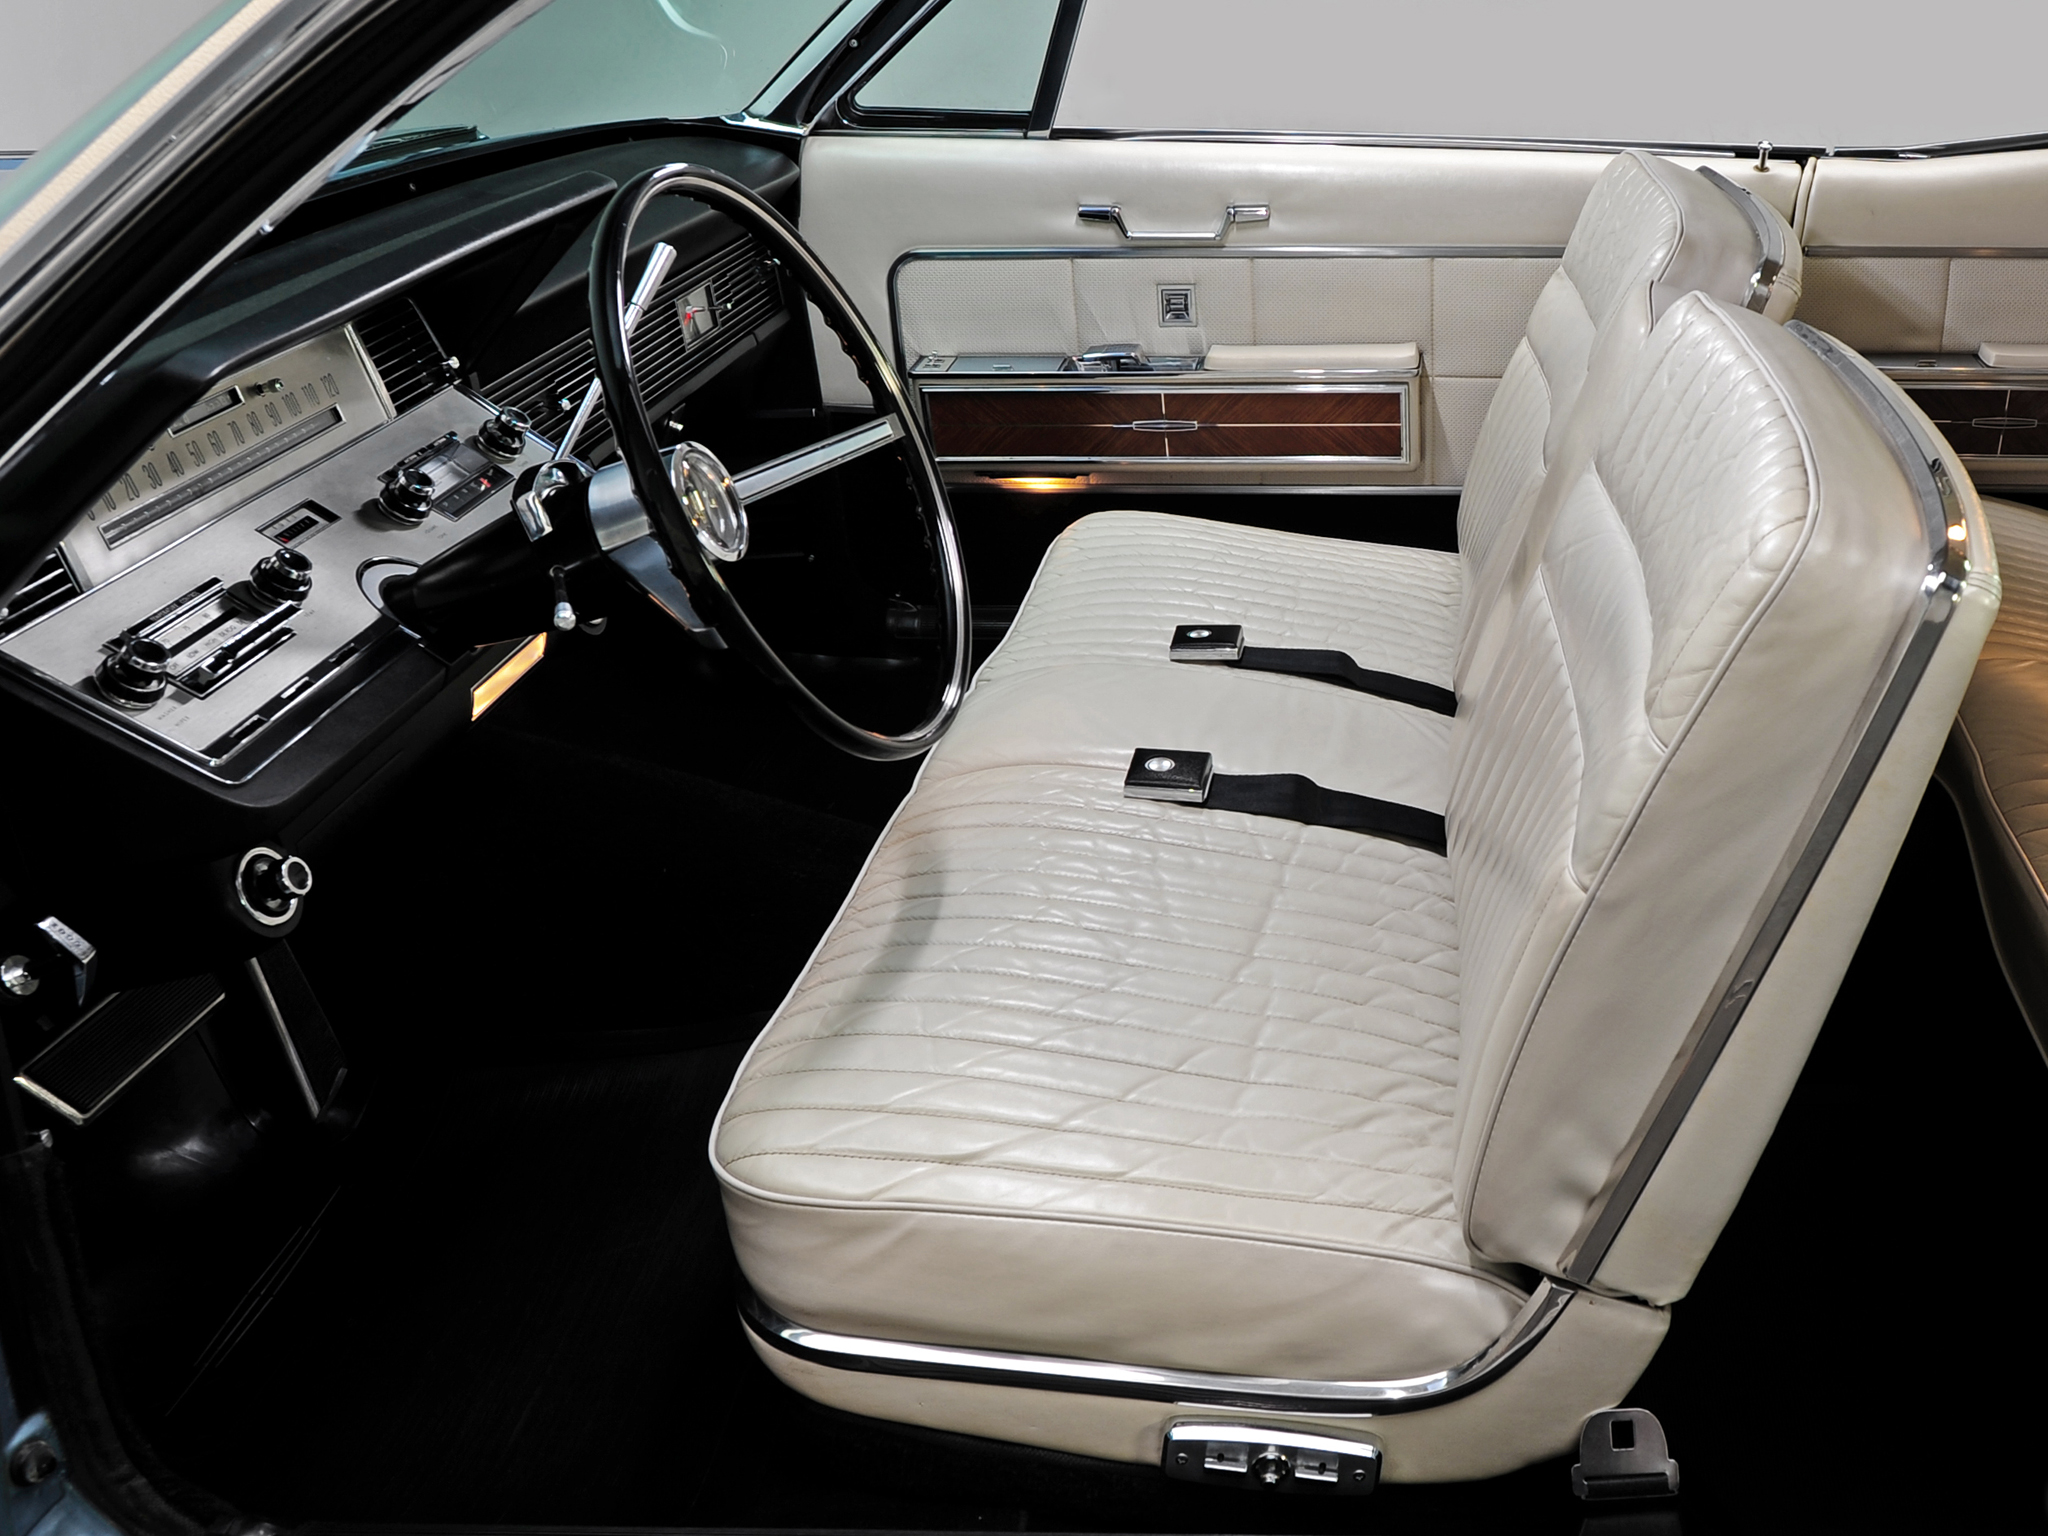 1966 lincoln continental hardtop coupe classic luxury interior h wallpaper 2048x1536 153968